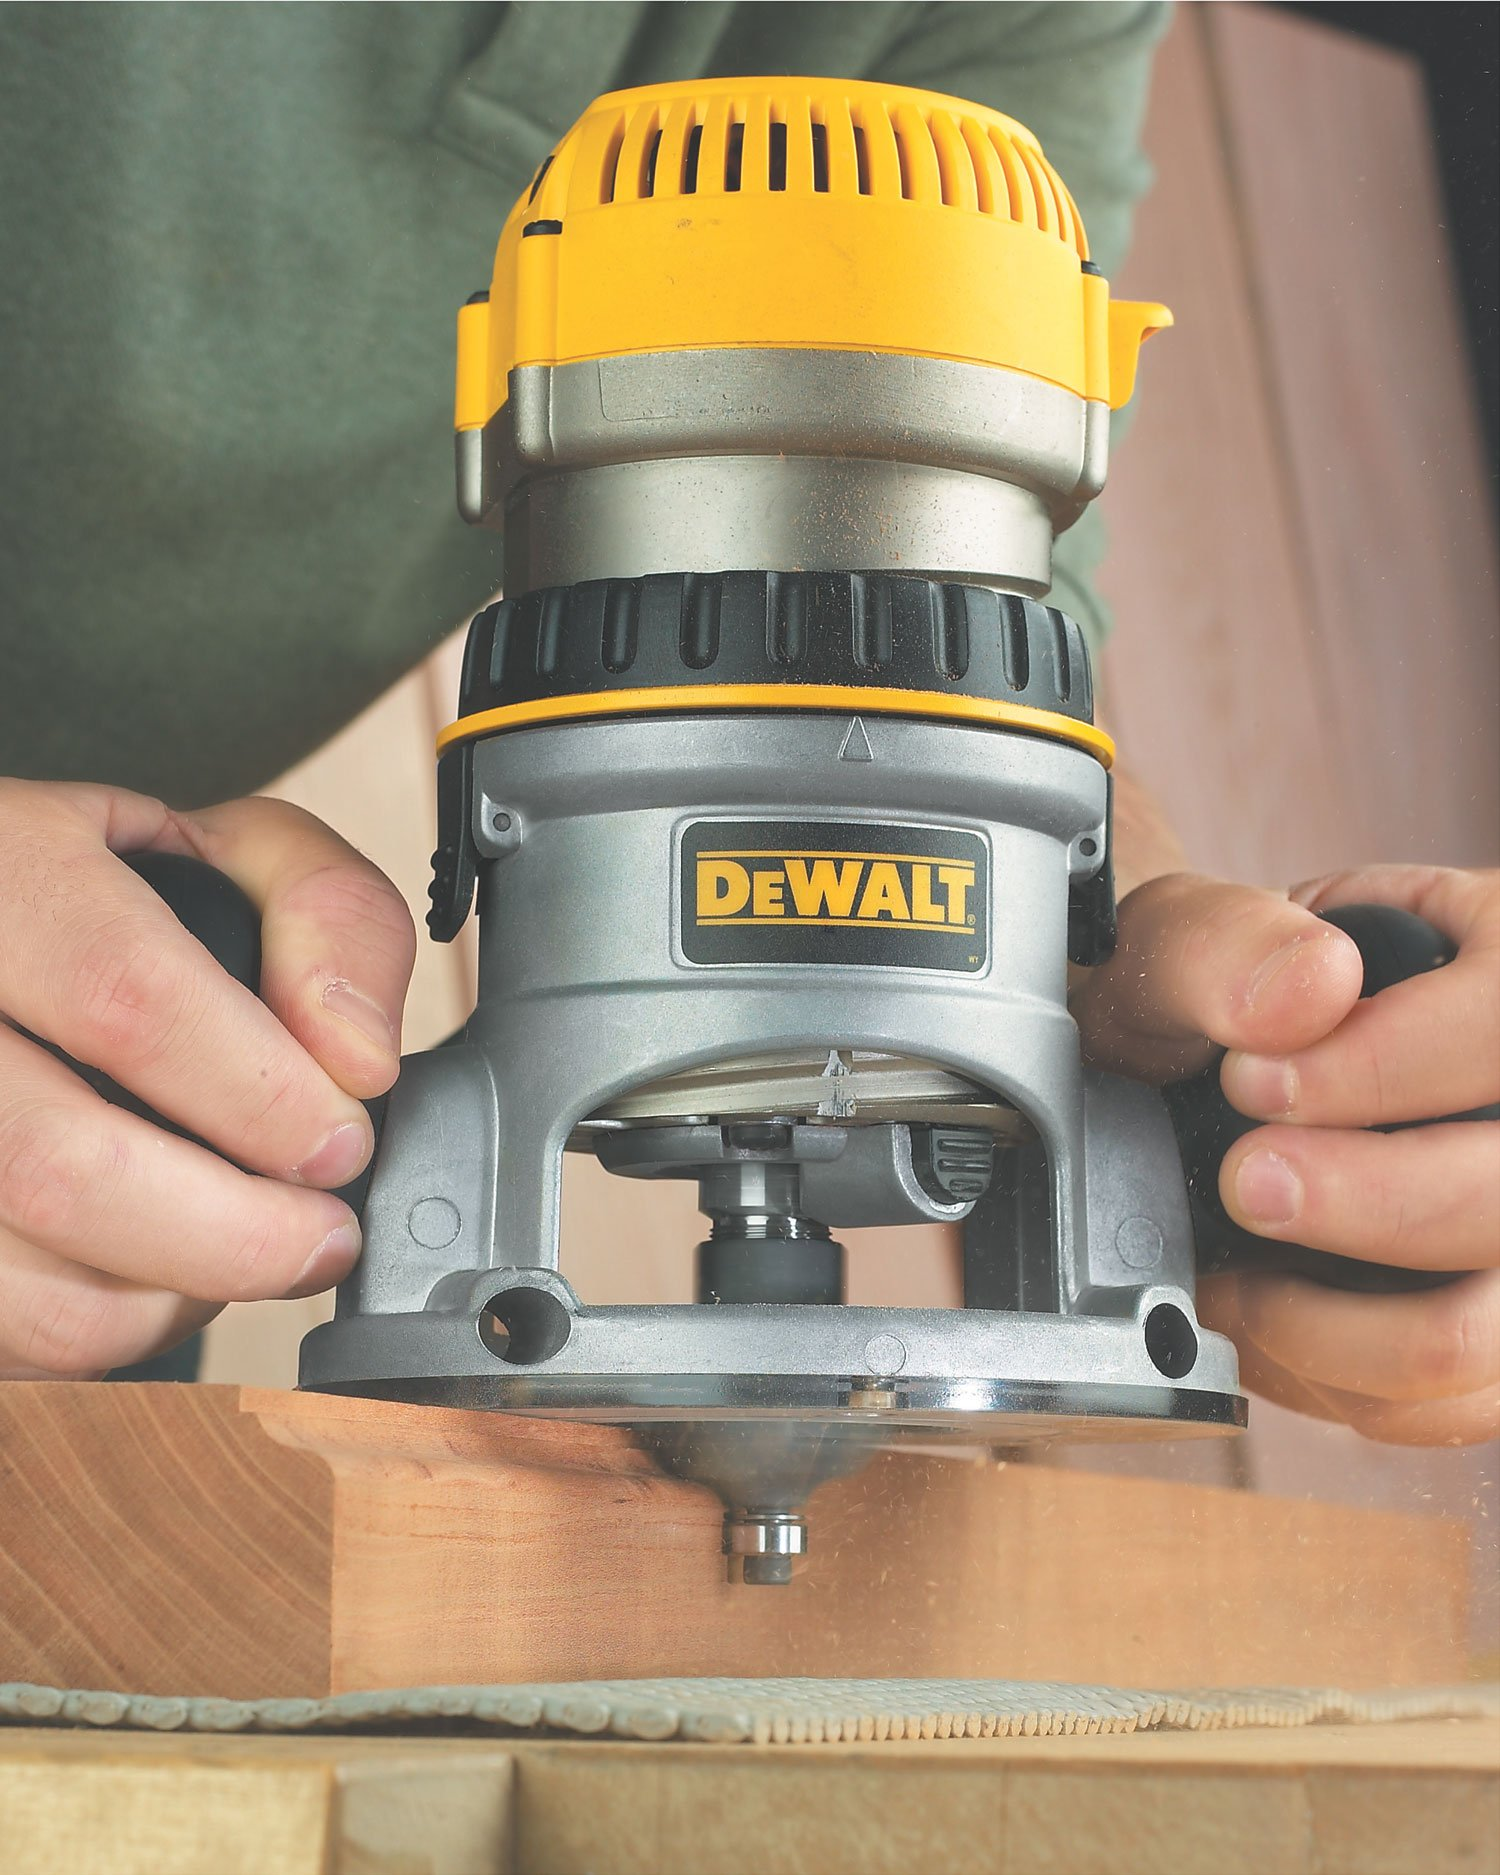 DEWALT DW618 2-1/4 HP Electronic Variable-Speed Fixed-Base Router by DEWALT (Image #2)